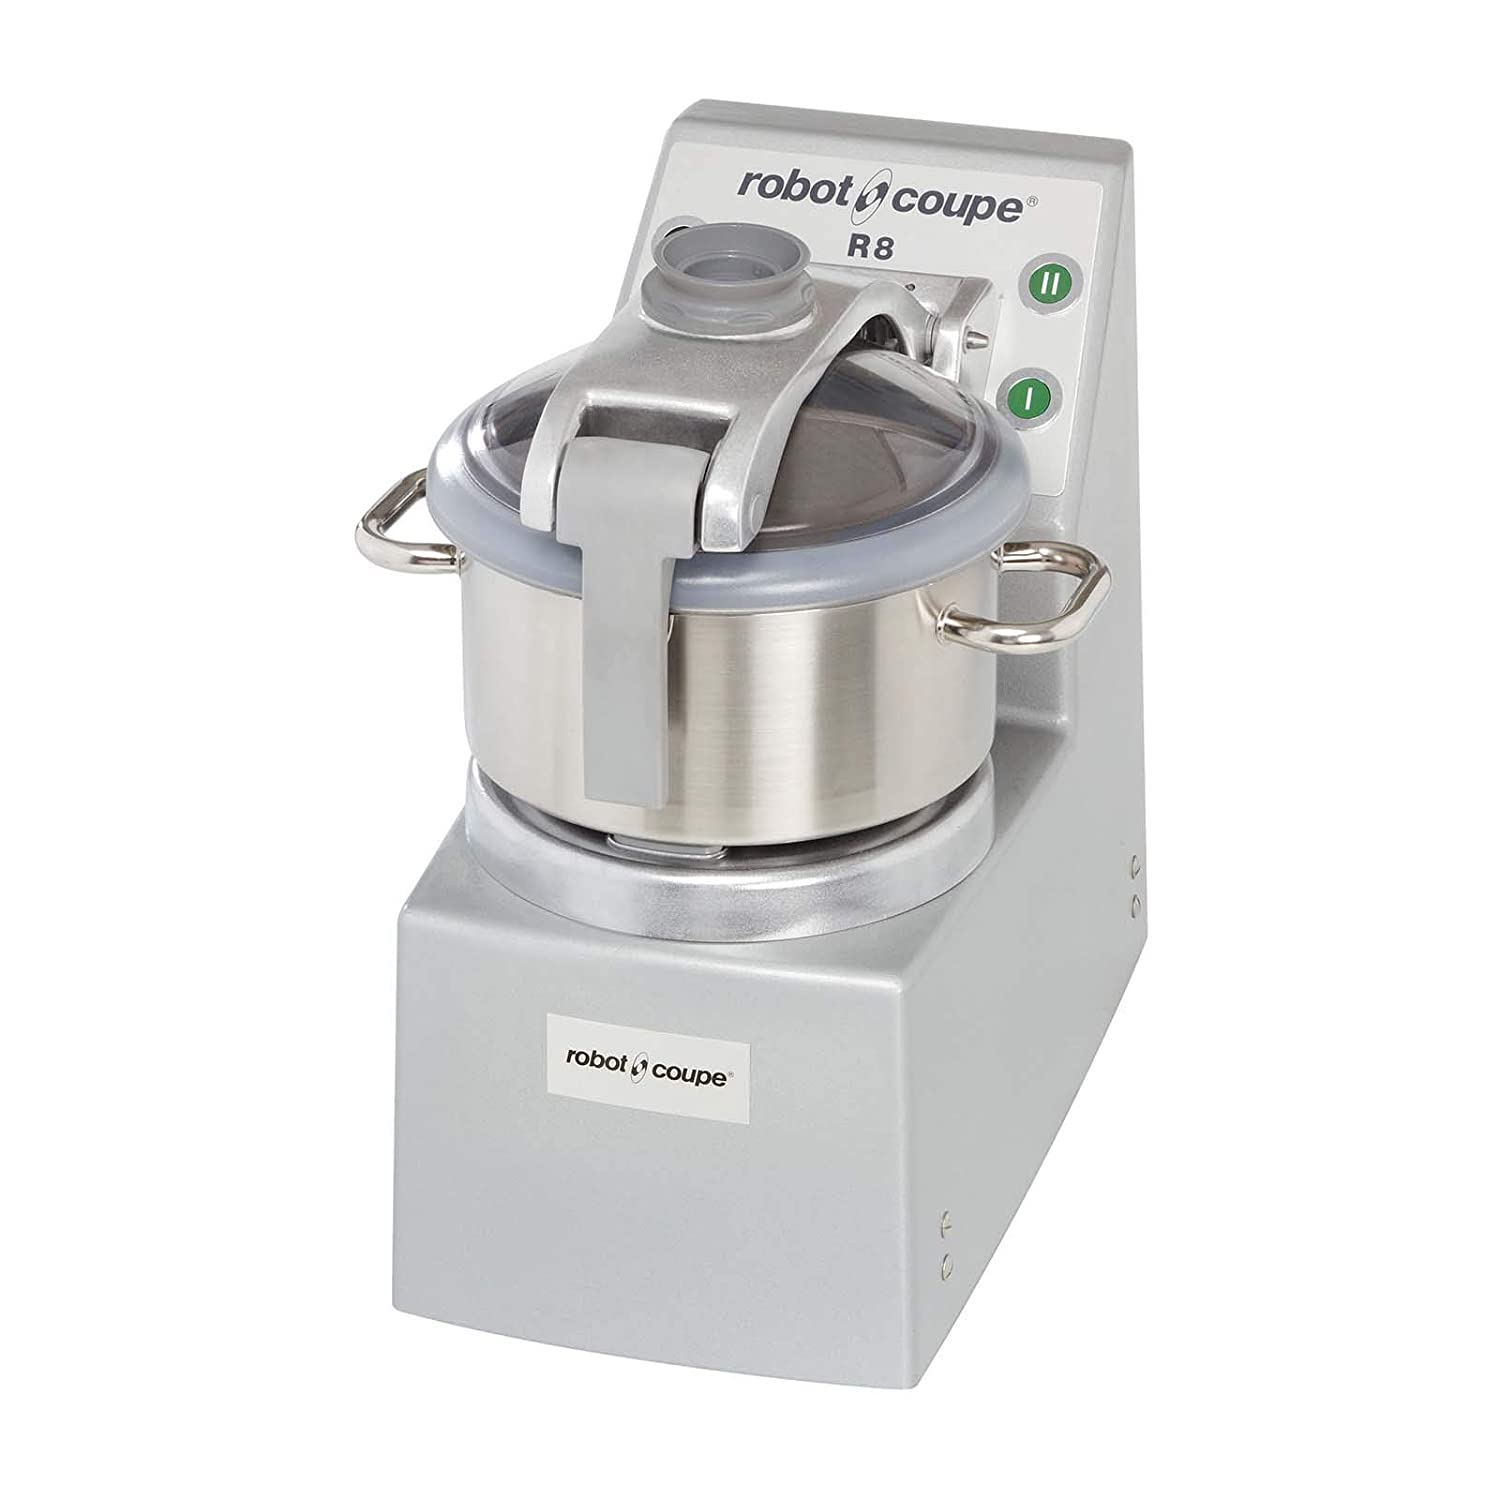 Robot Coupe R8 2-Speed Vertical Cutter Mixer Food Processor with 8-Quart Stainless Steel Bowl, 208-240v/3ph, 8 qt